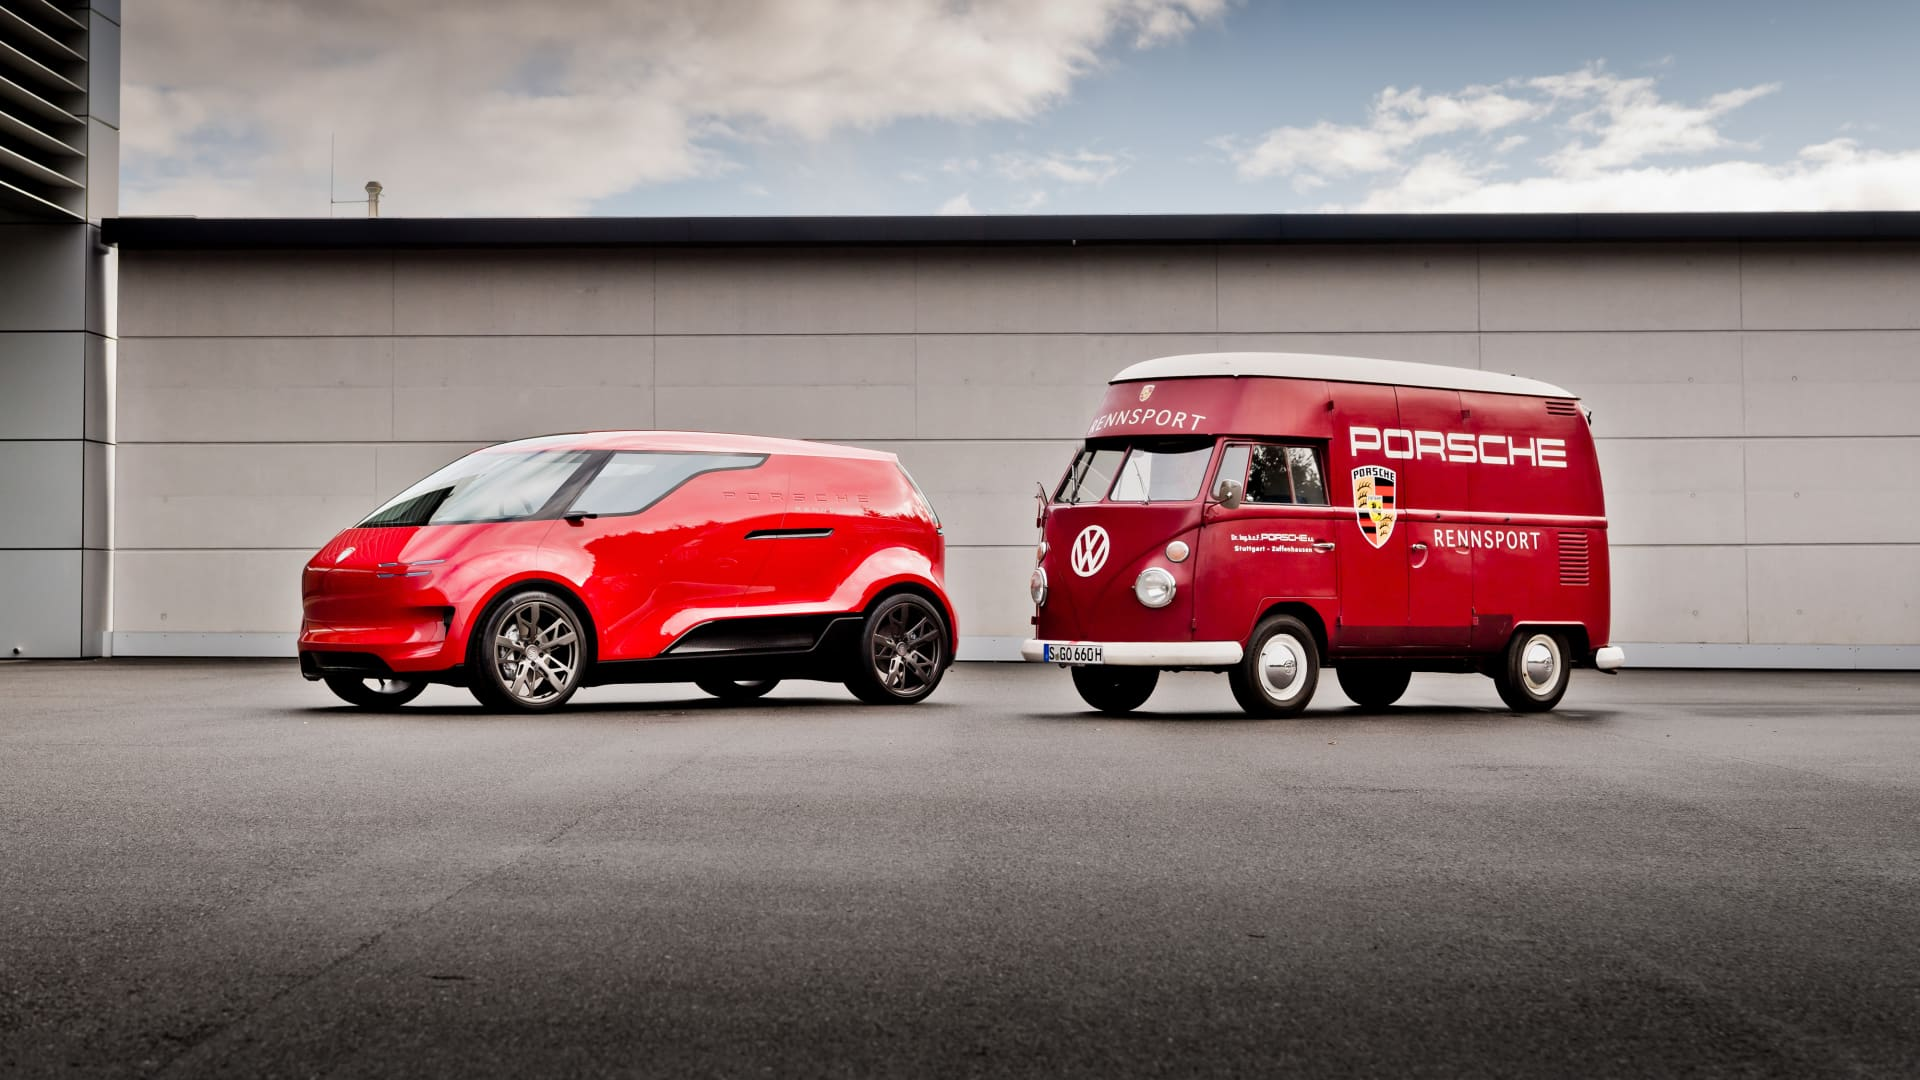 Porsche's electric van concept featured next to a Volkswagen bus.